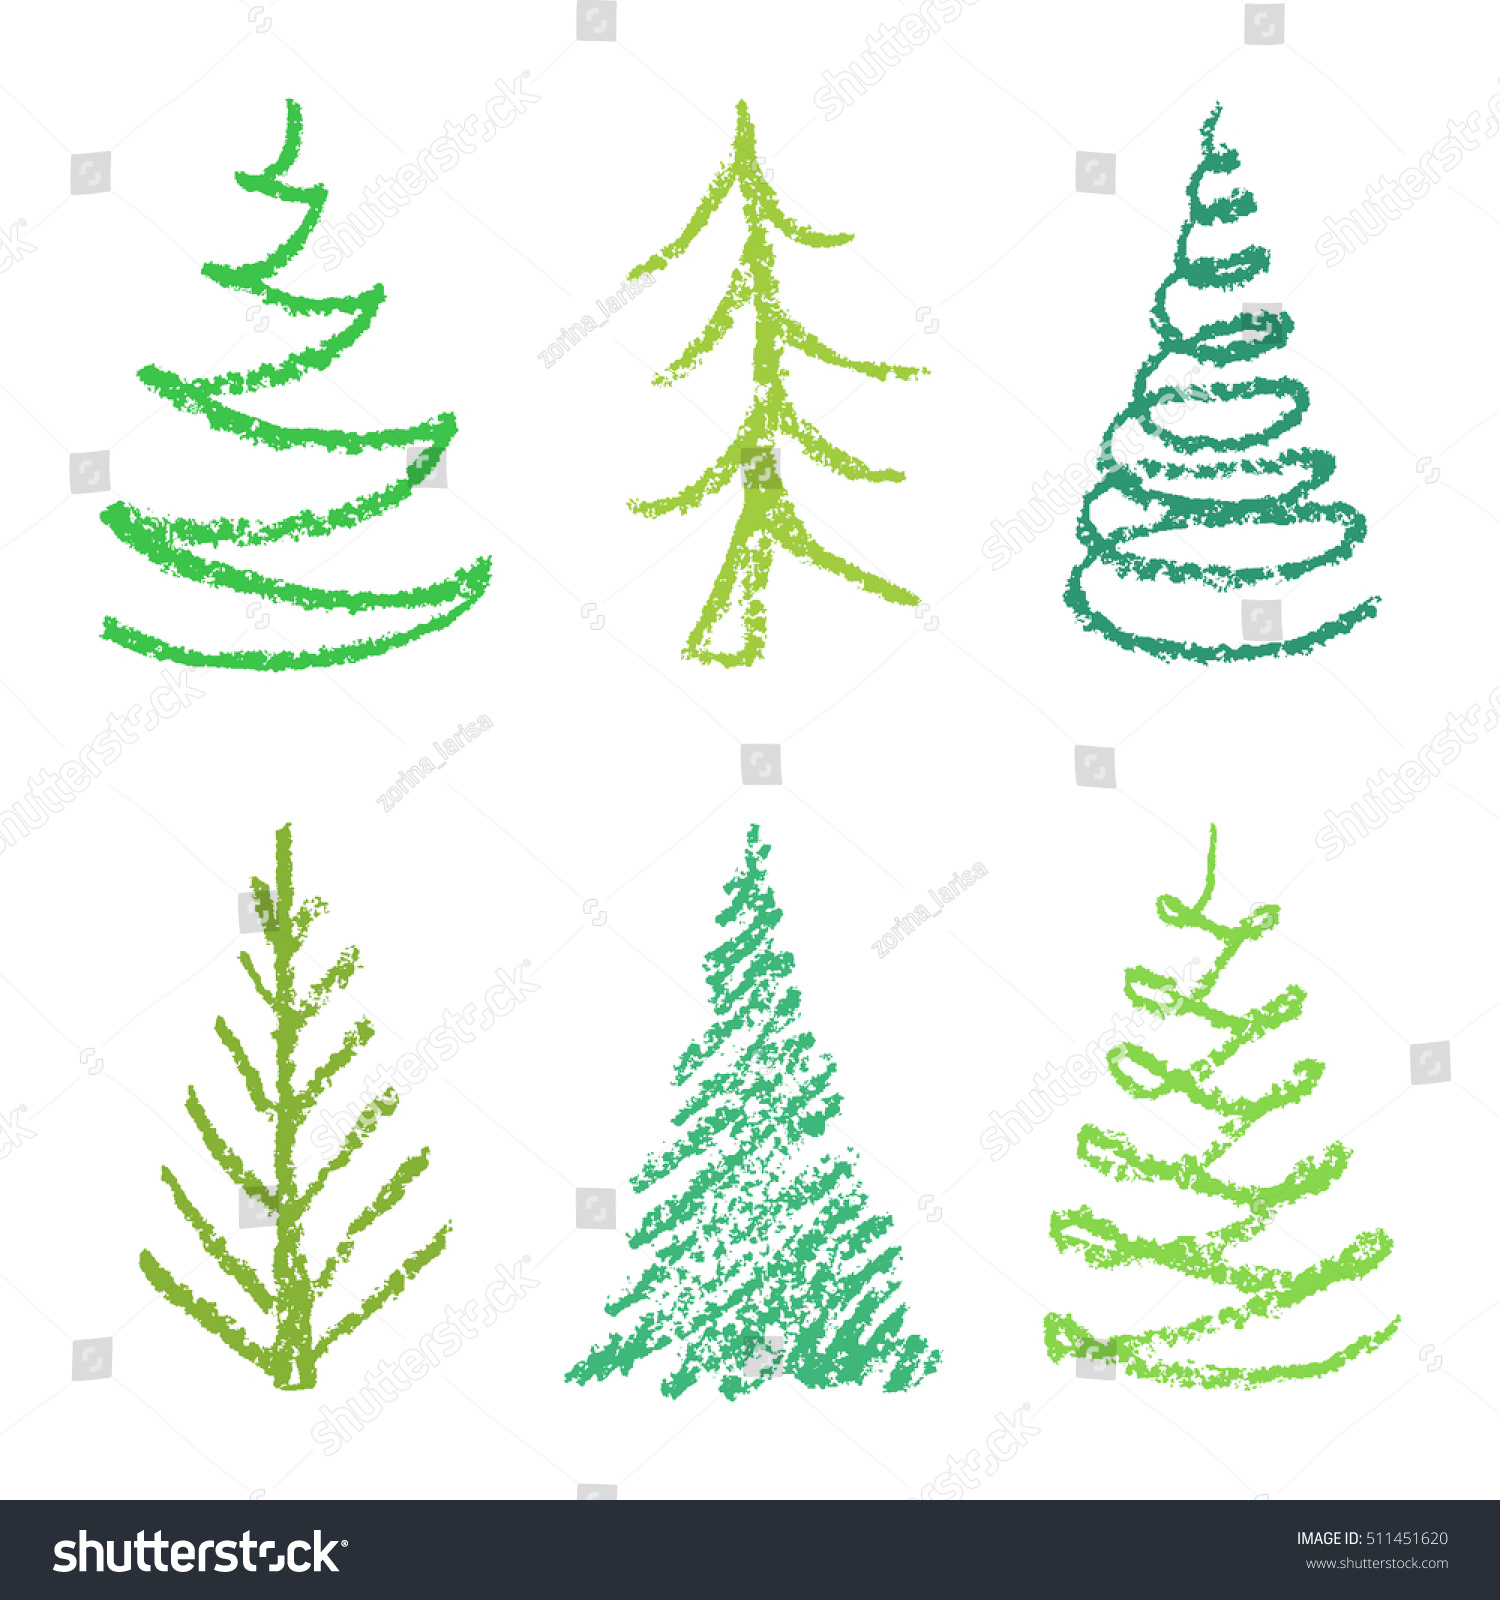 Crayon Childs Drawing Merry Christmas Tree Stock Vector 511451620 ...